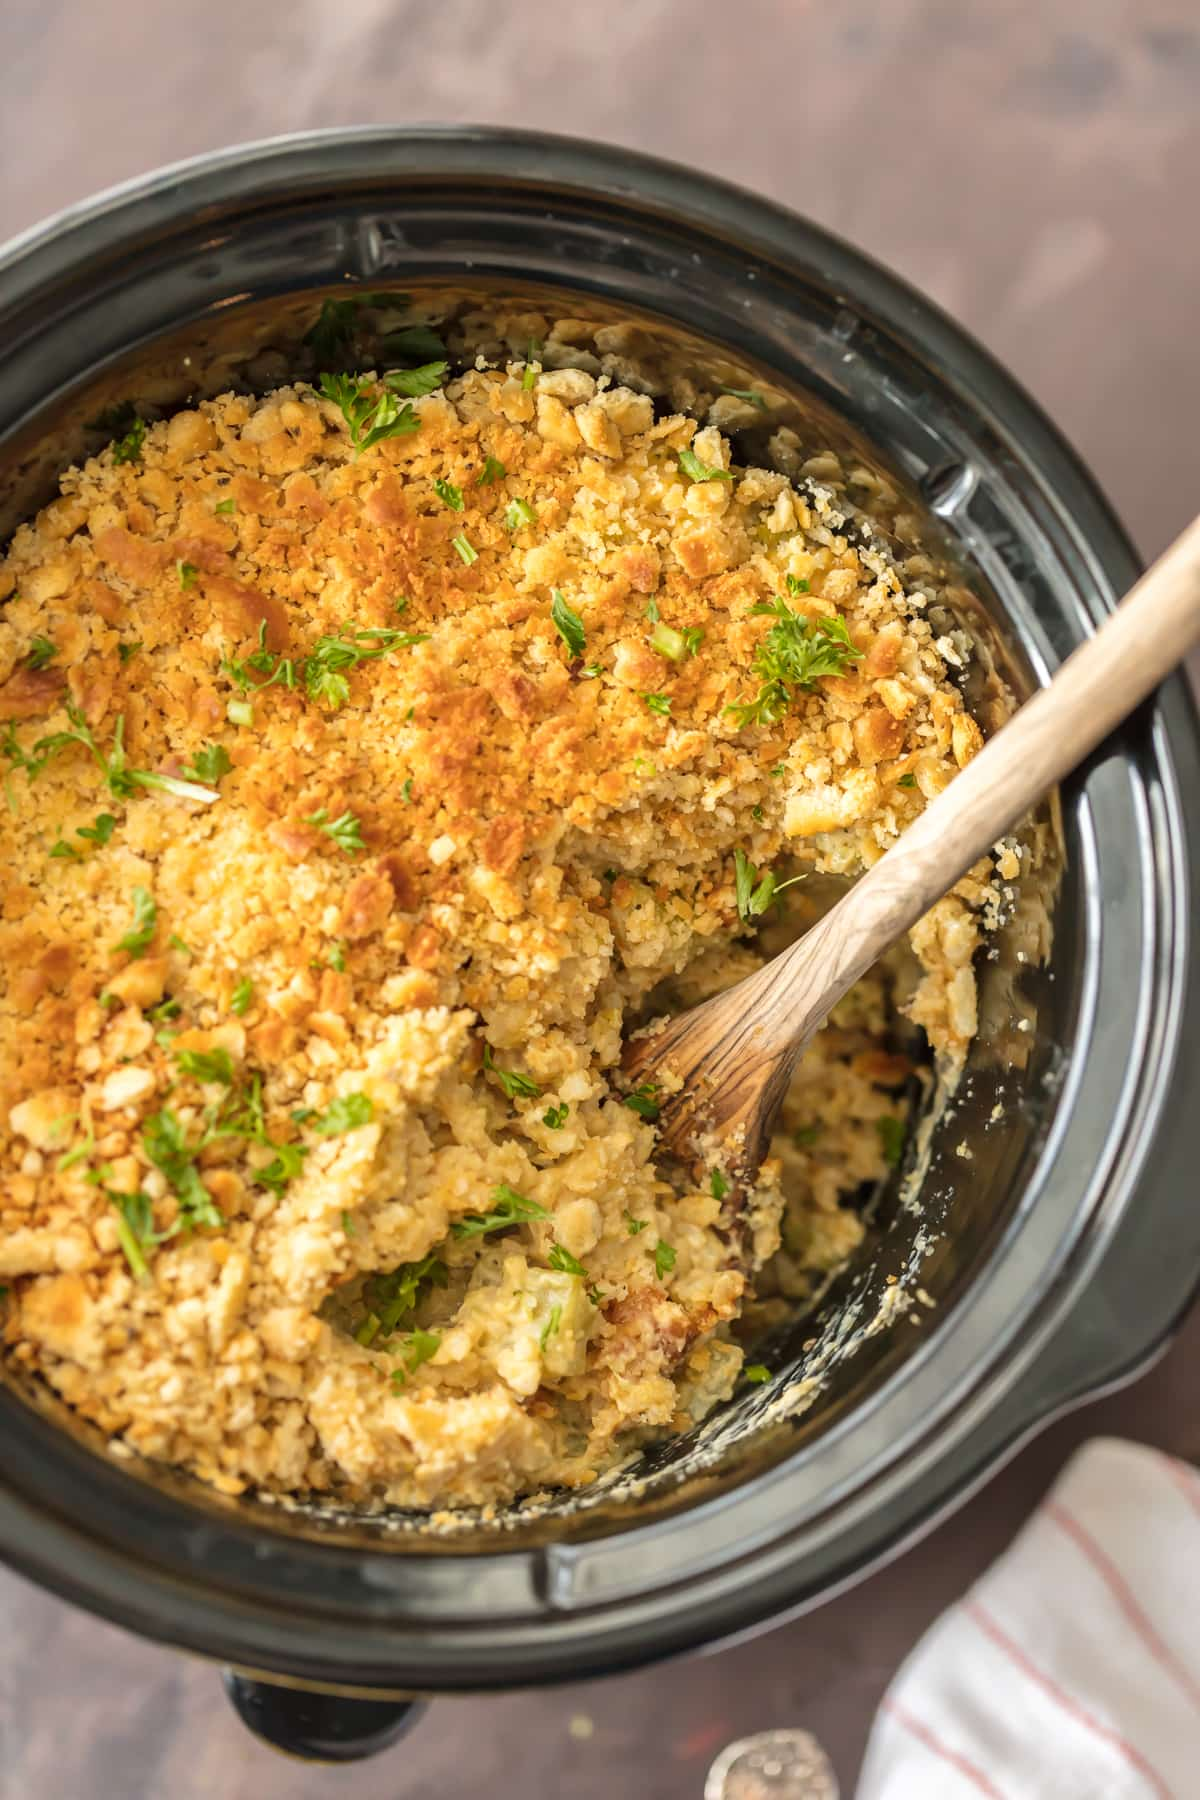 This Slow Cooker Broccoli Rice Casserole Is Our Go To Holiday Side Dish Such